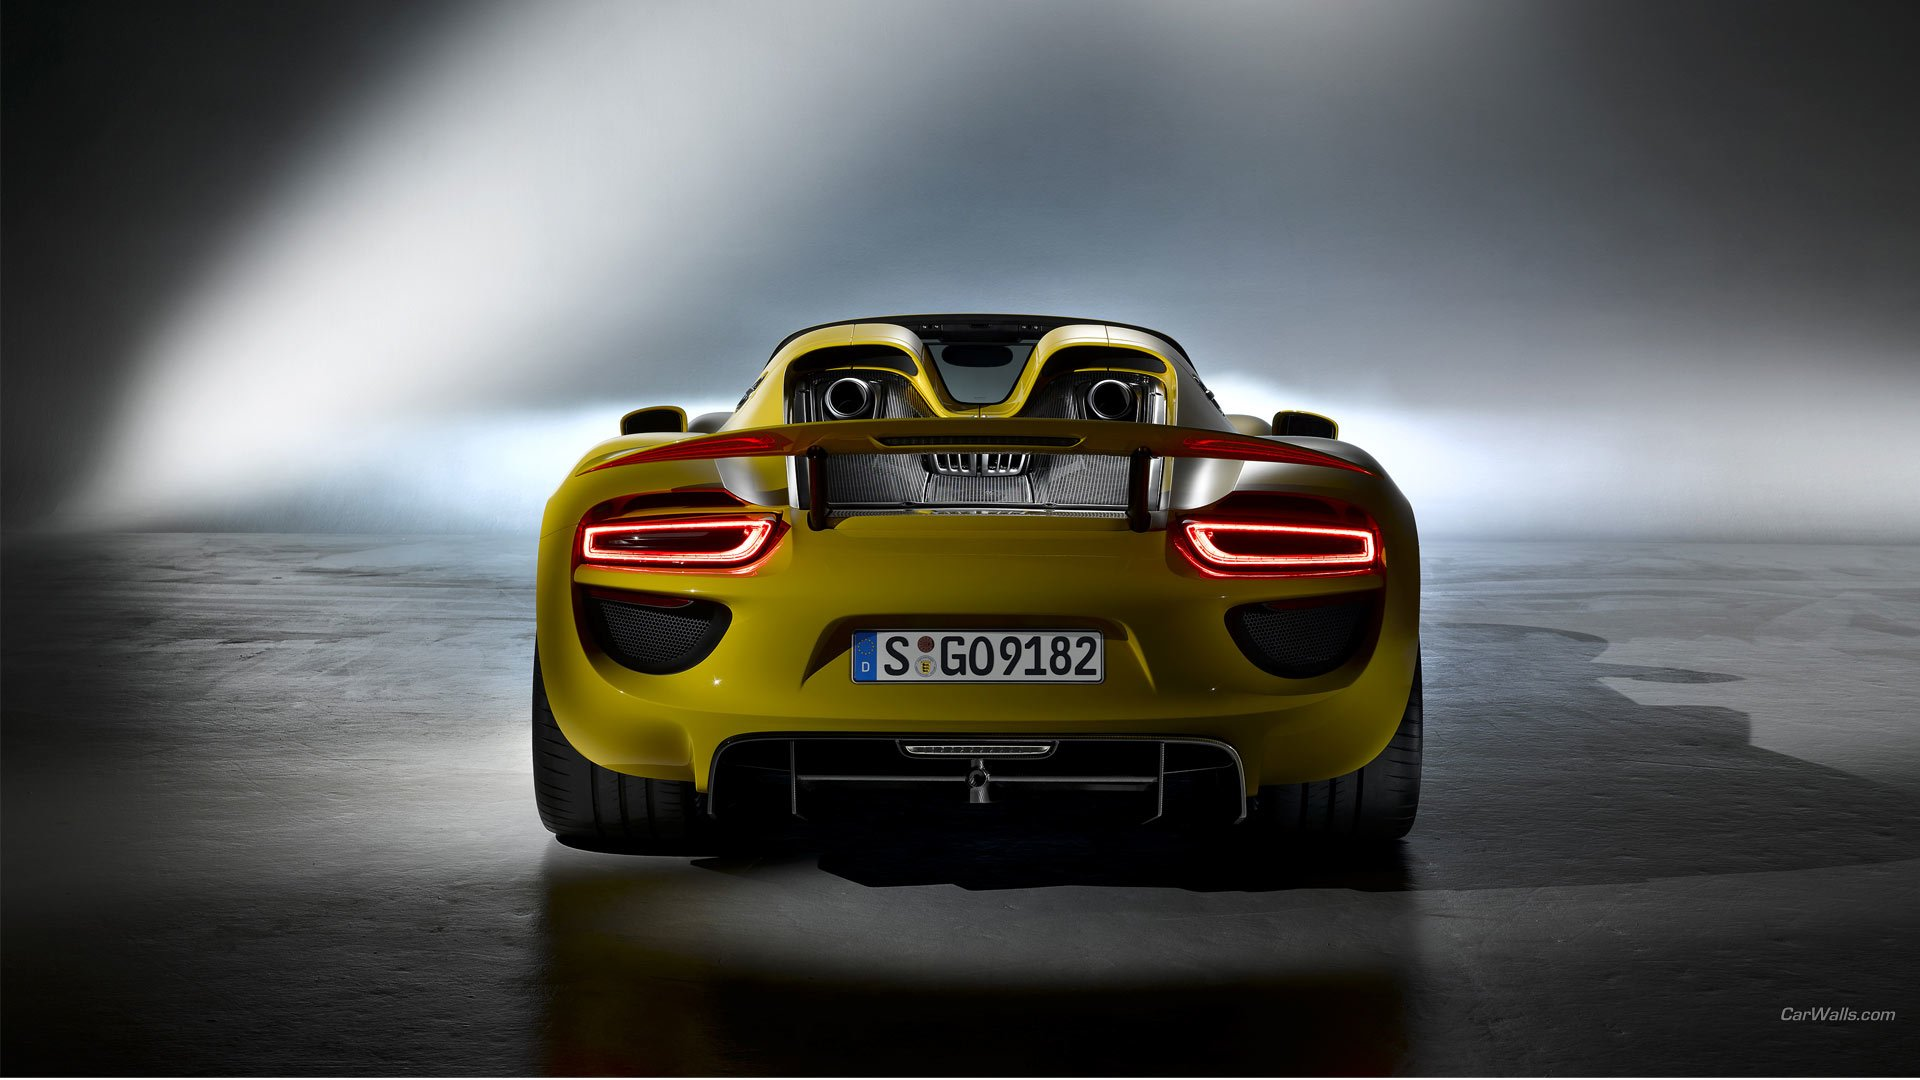 porsche 918 spyder full hd wallpaper and background 1920x1080 id 469246. Black Bedroom Furniture Sets. Home Design Ideas